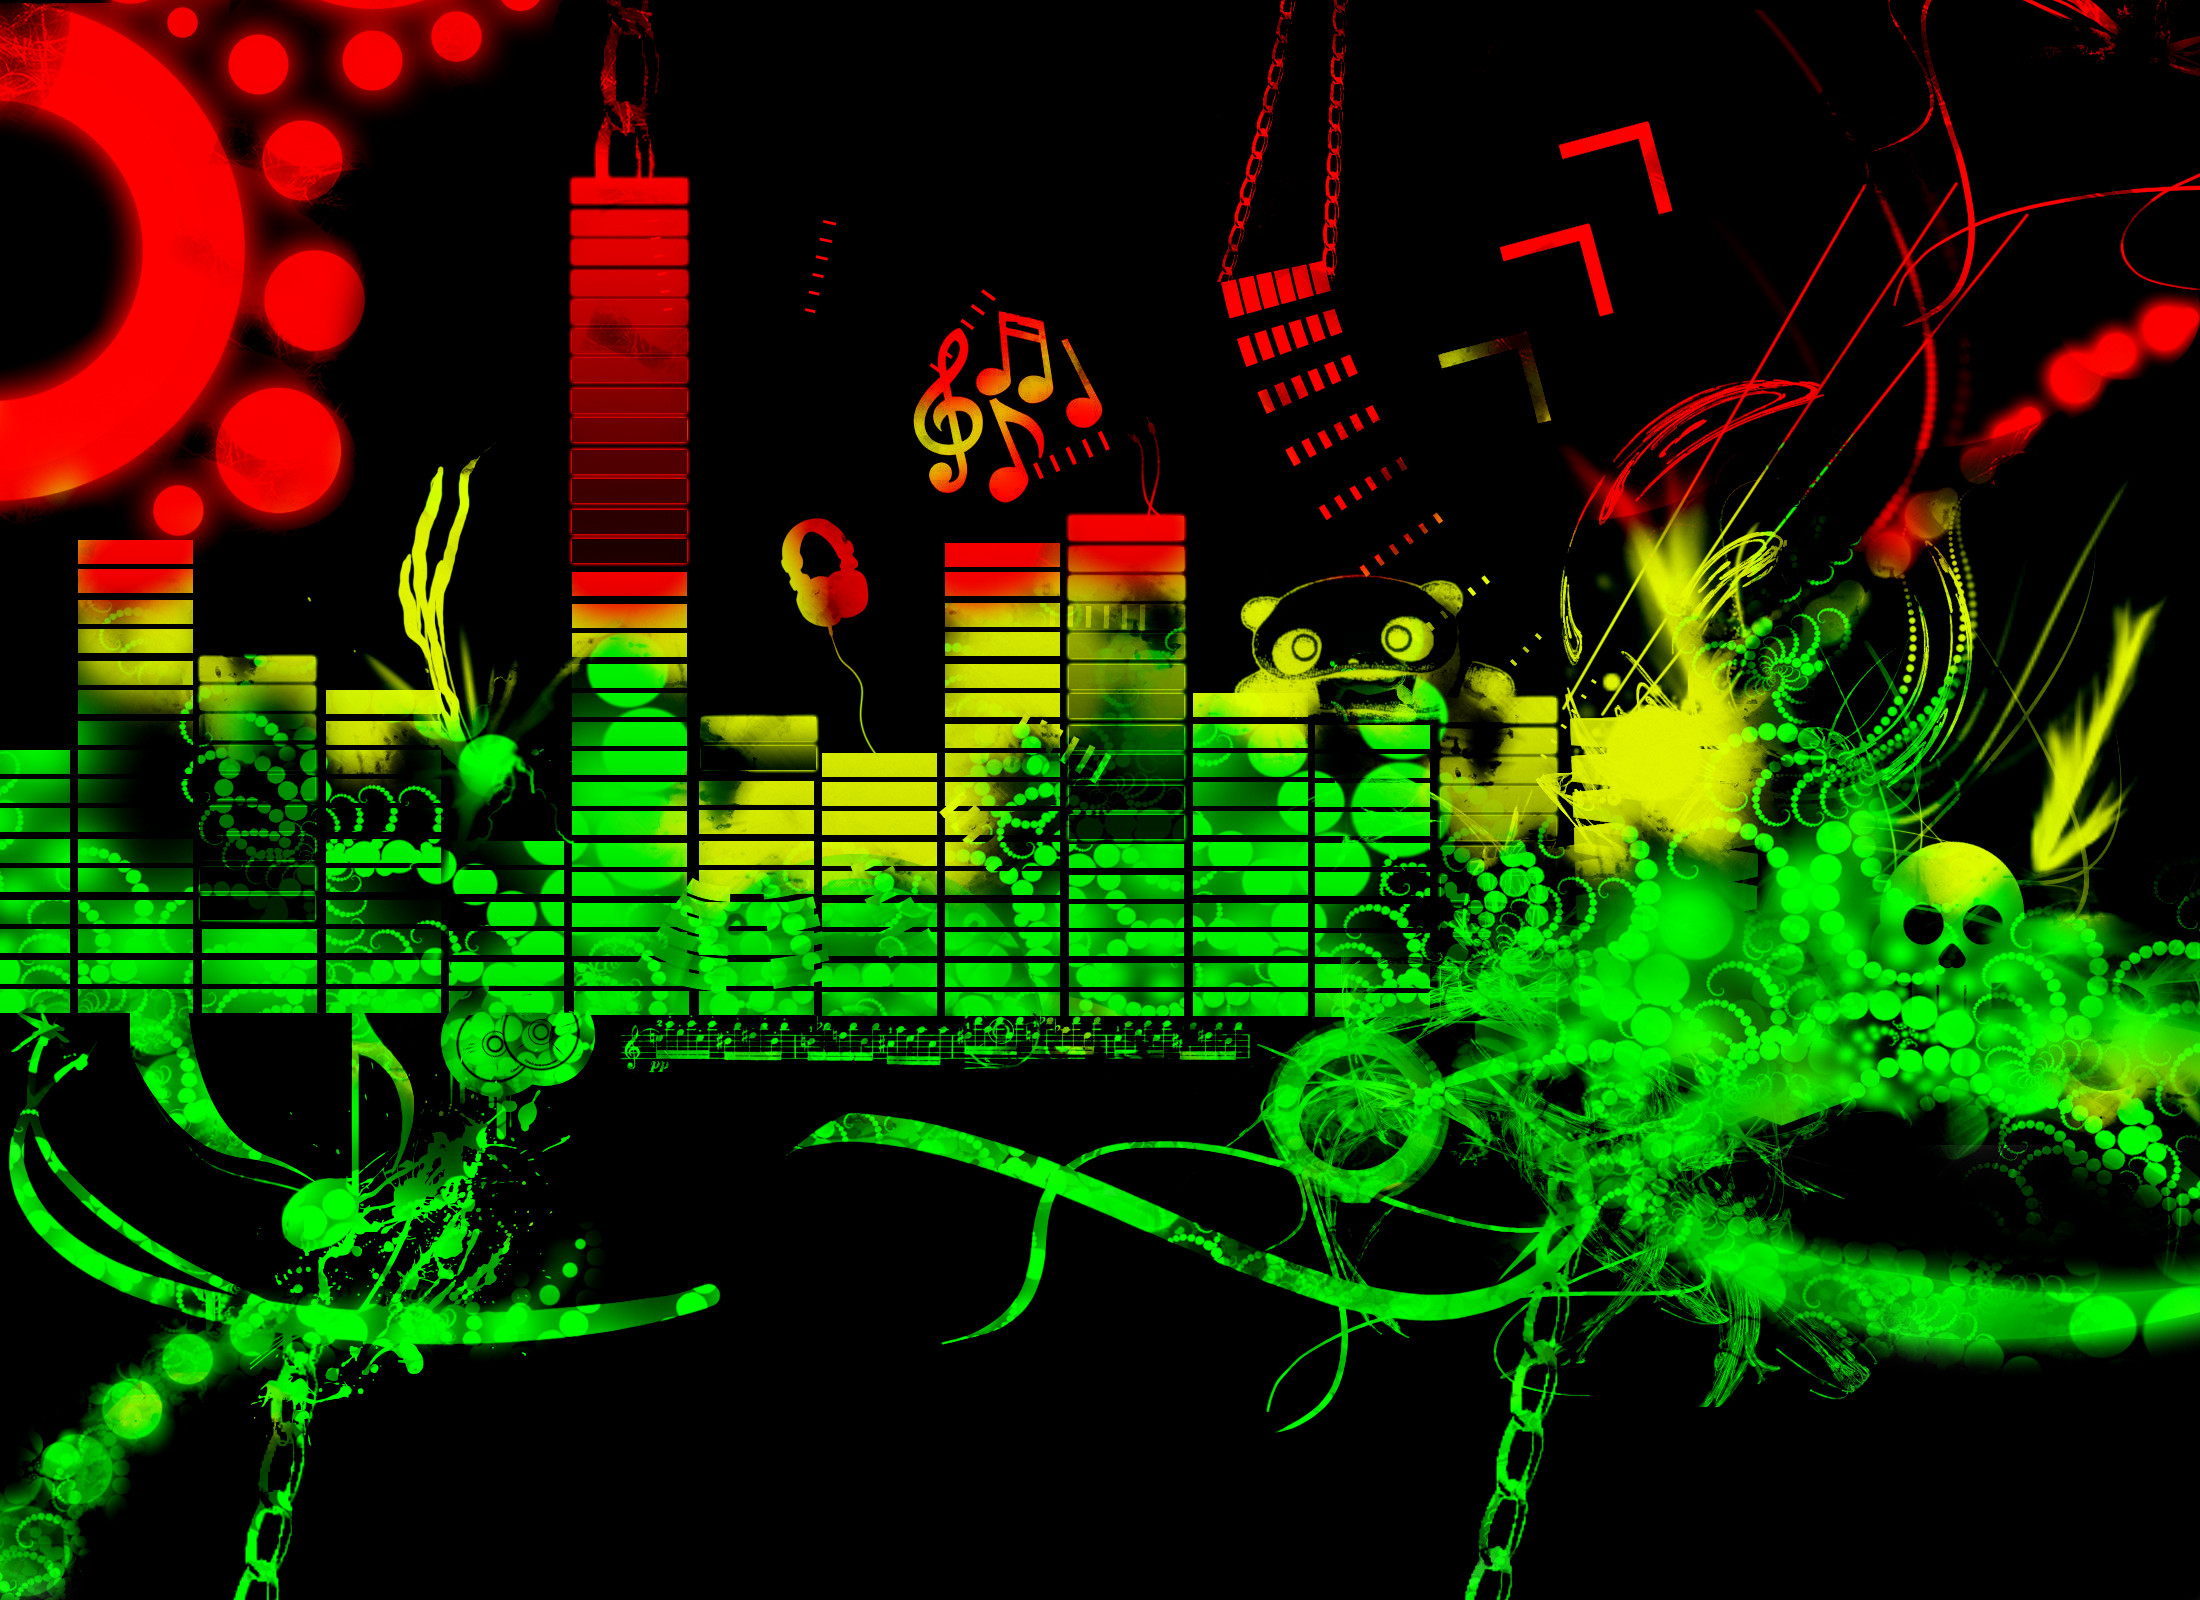 Electro house music wallpaper 64 images for Musik hause